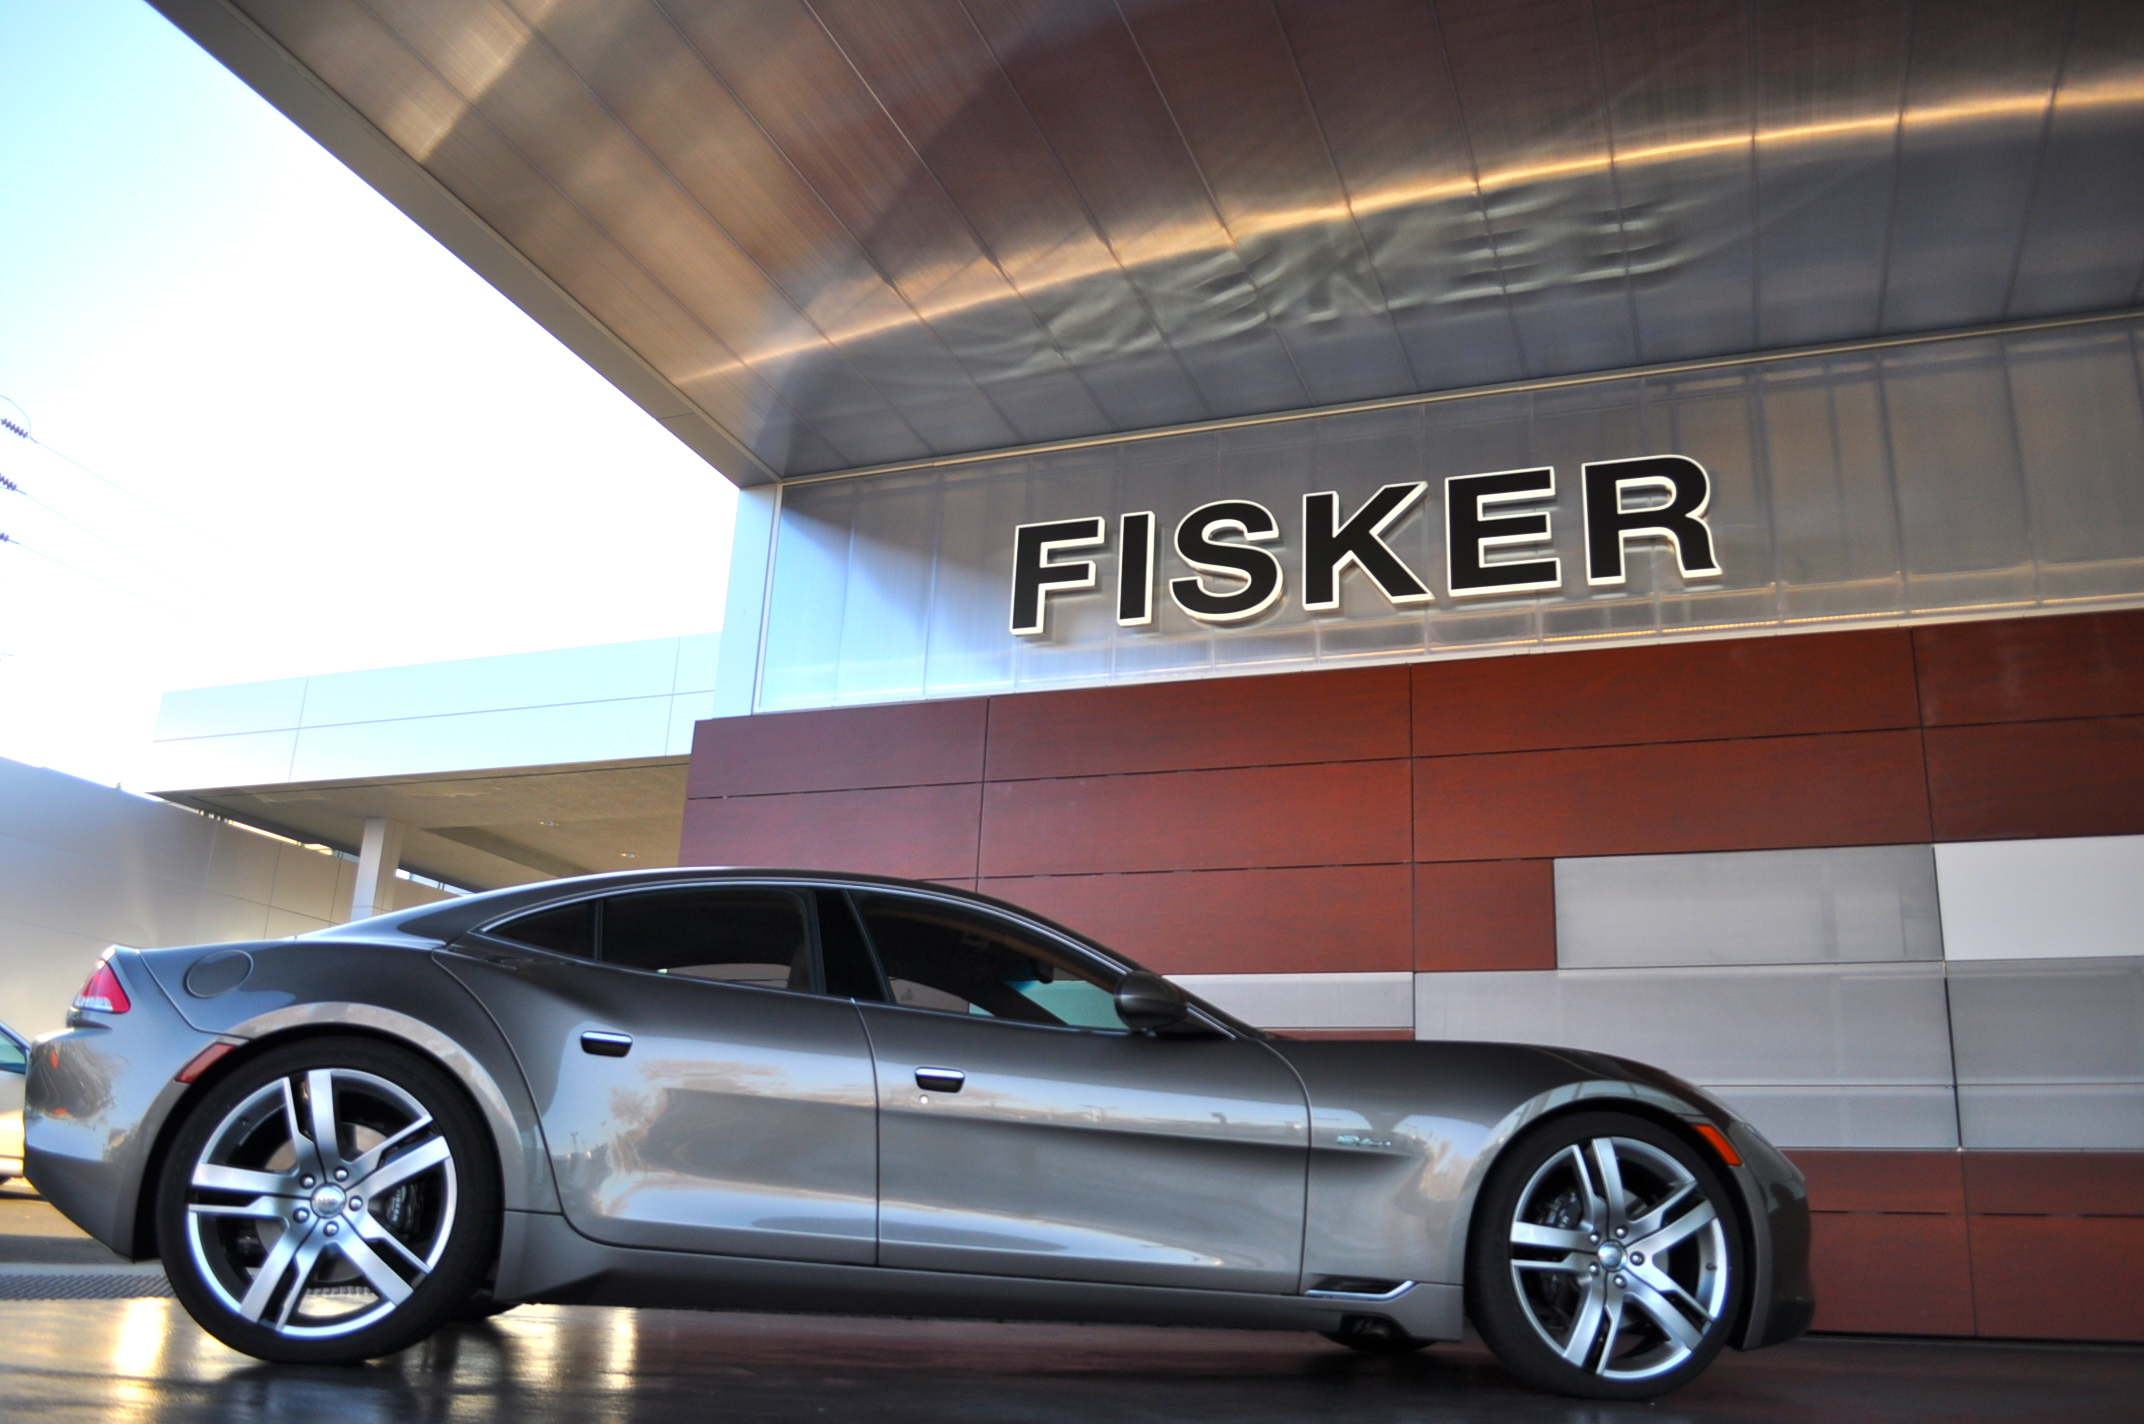 Fisker Karmas Catch Fire After Being Submerged By